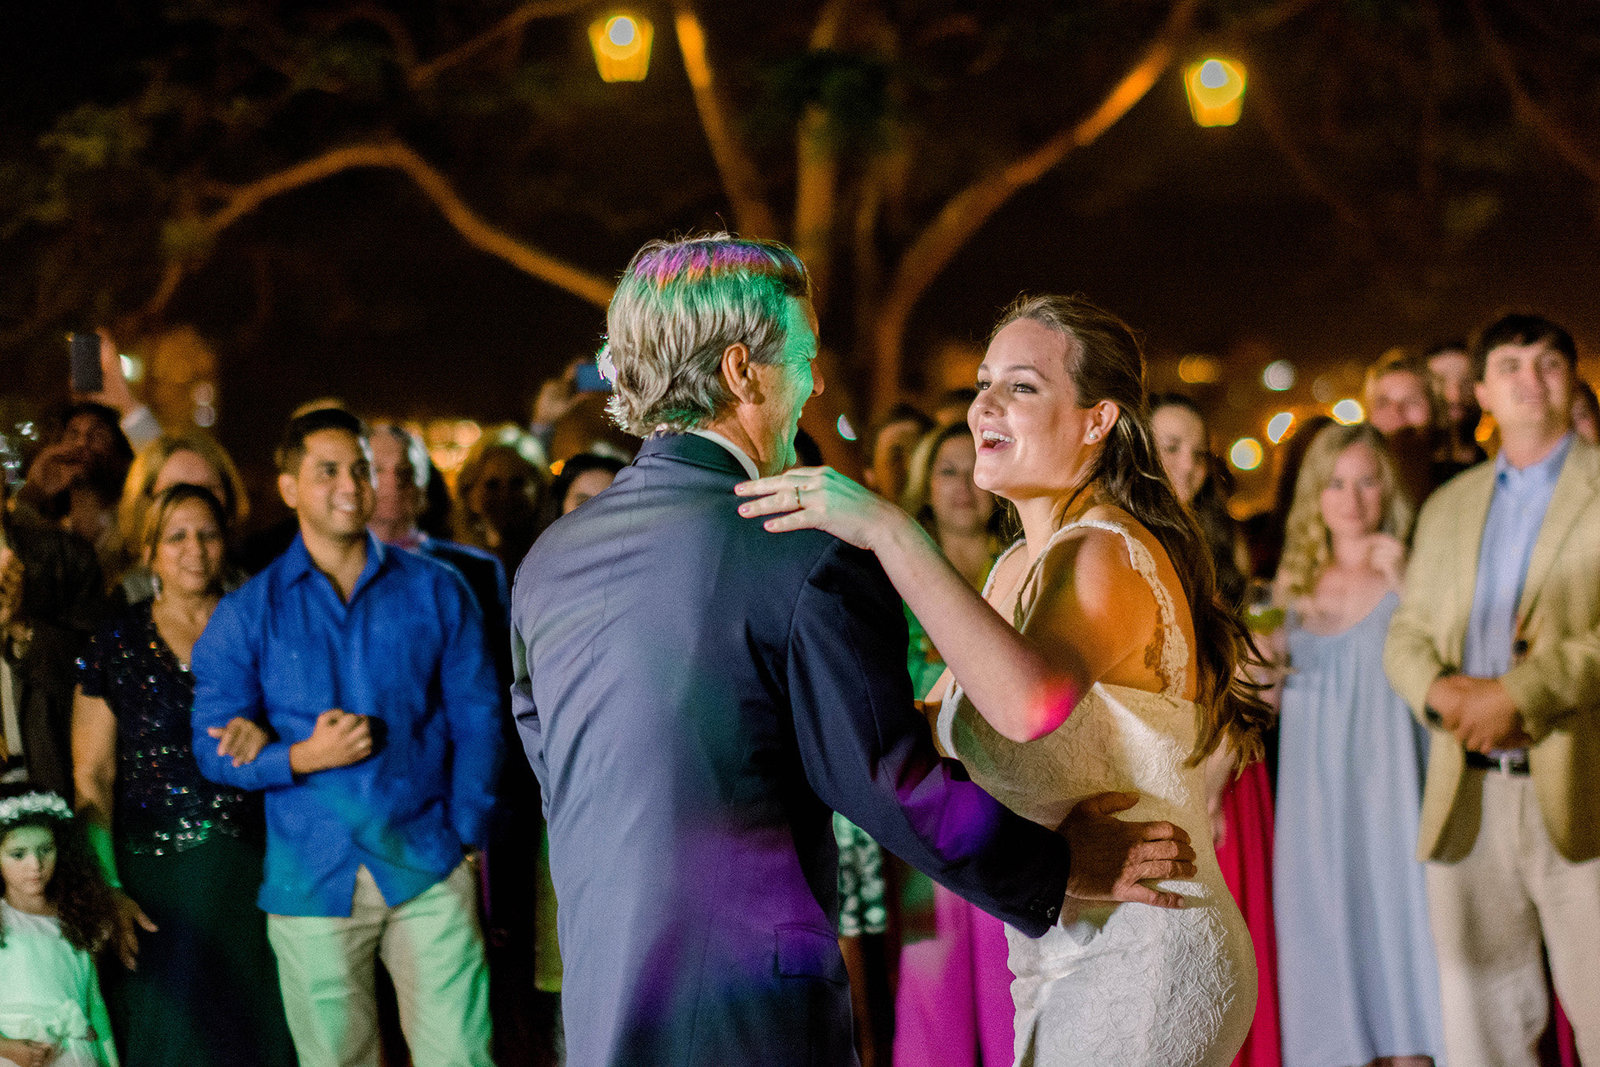 20150328-Pura-Soul-Photo-Cuba-Wedding-106